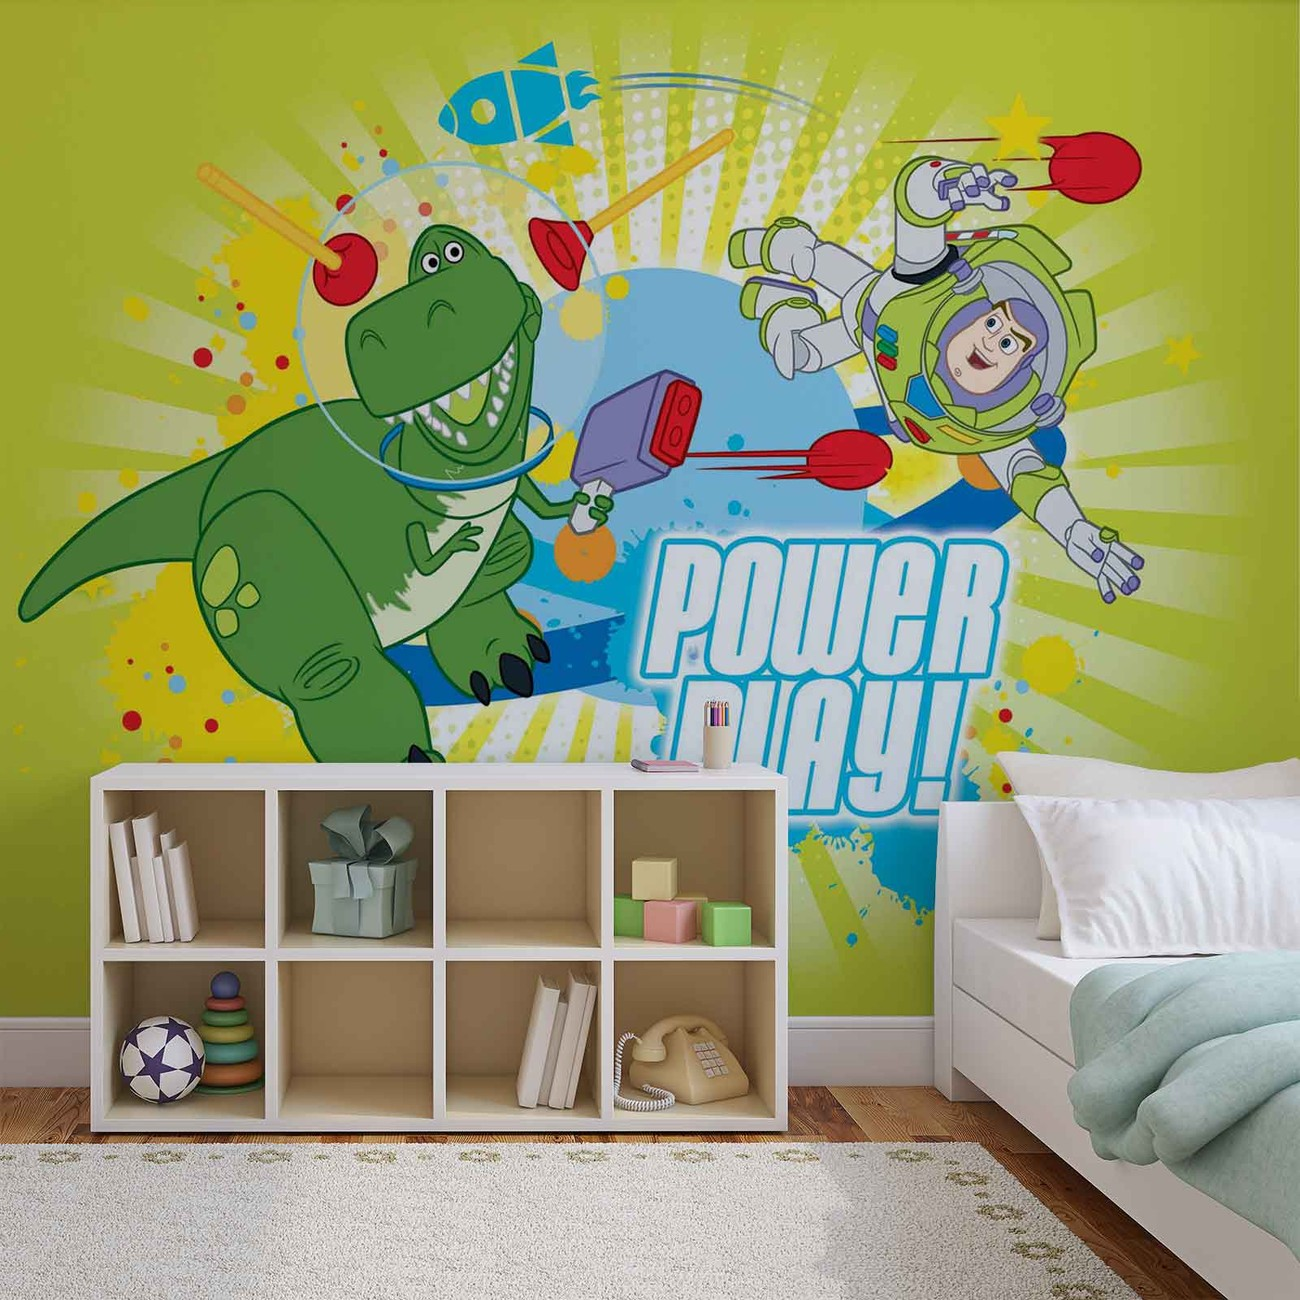 Toy story disney wall paper mural buy at europosters for Disney wall mural uk